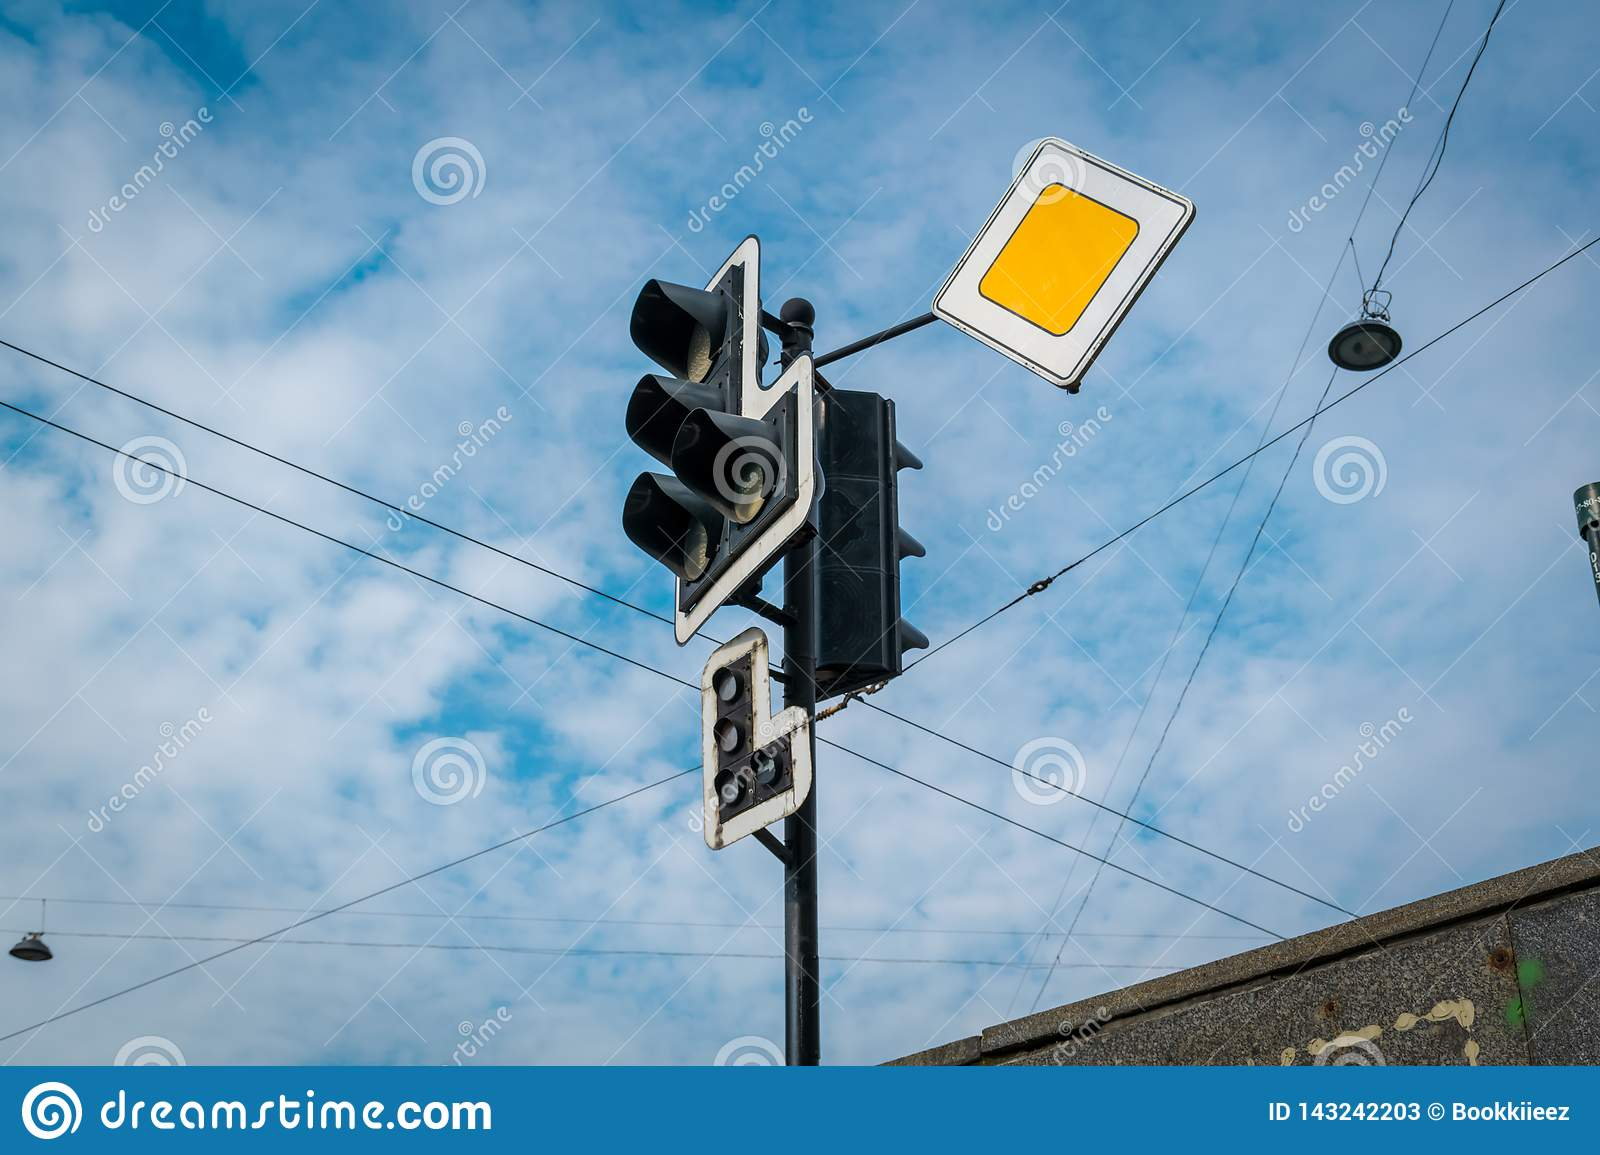 The traffic light with yellow sign.